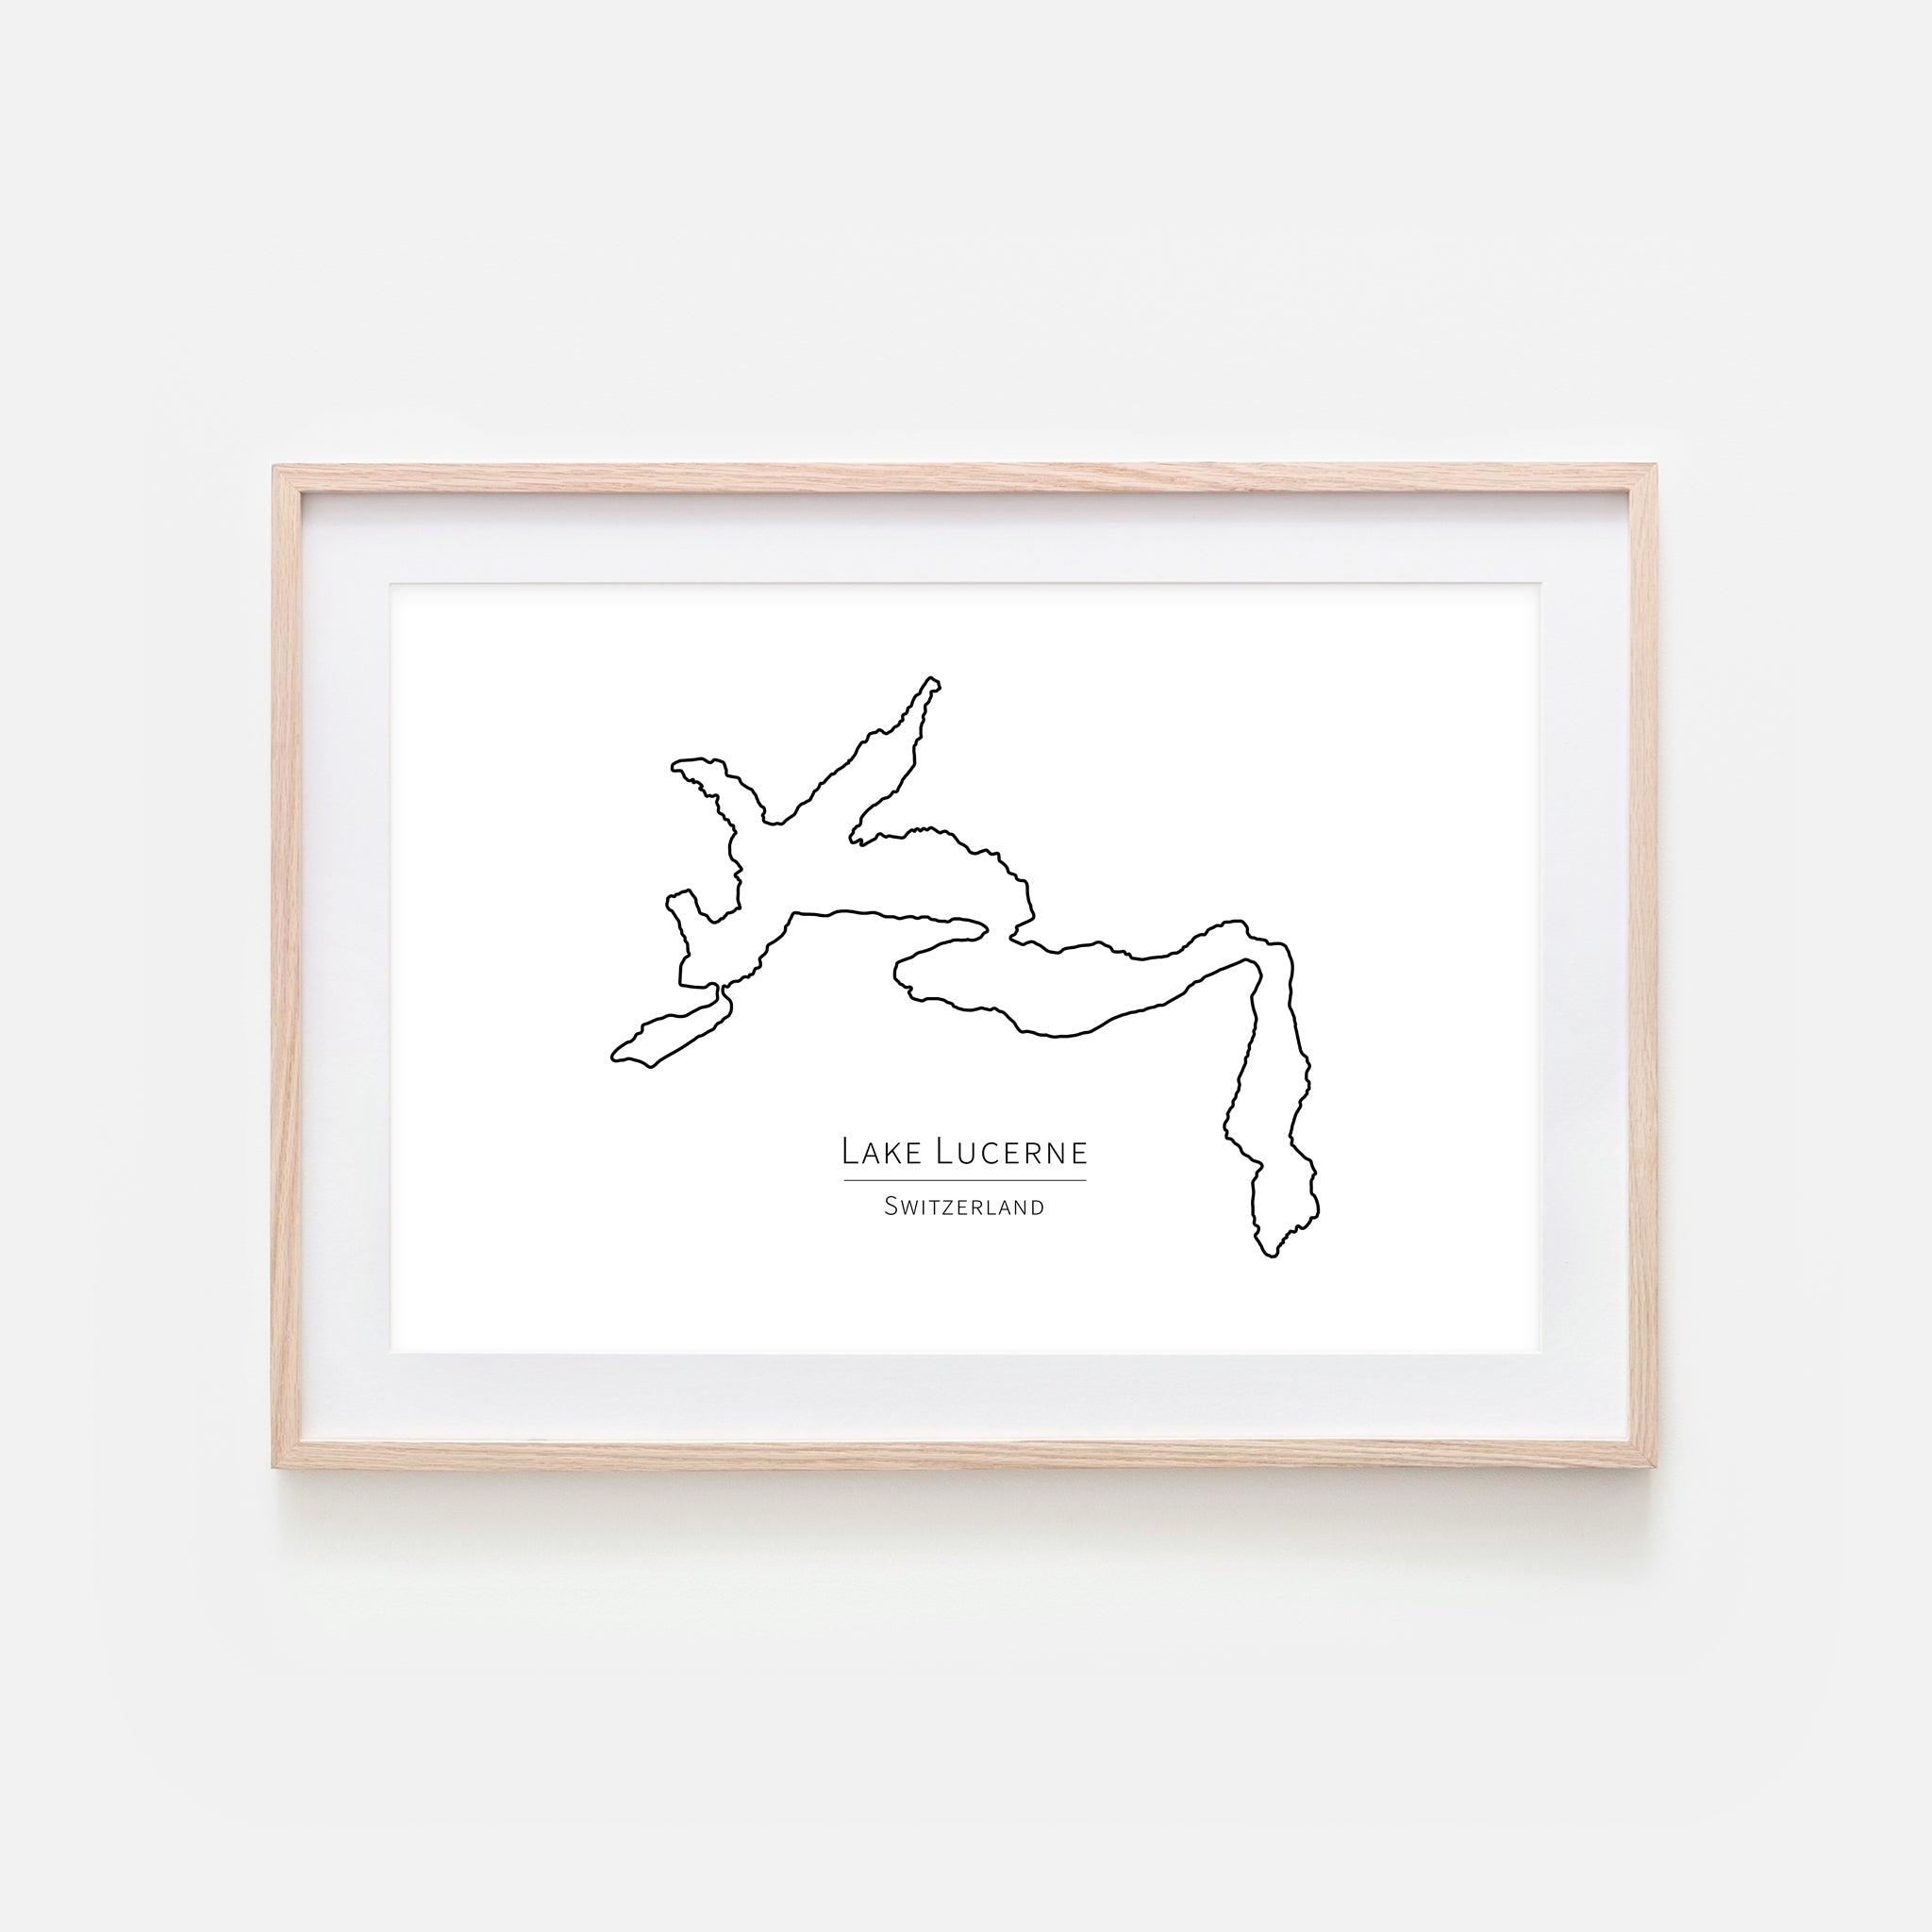 Lake Lucerne Switzerland Europe Wall Art - Minimalist Map - Lake House Decor - Black and White Print, Poster or Printable Download